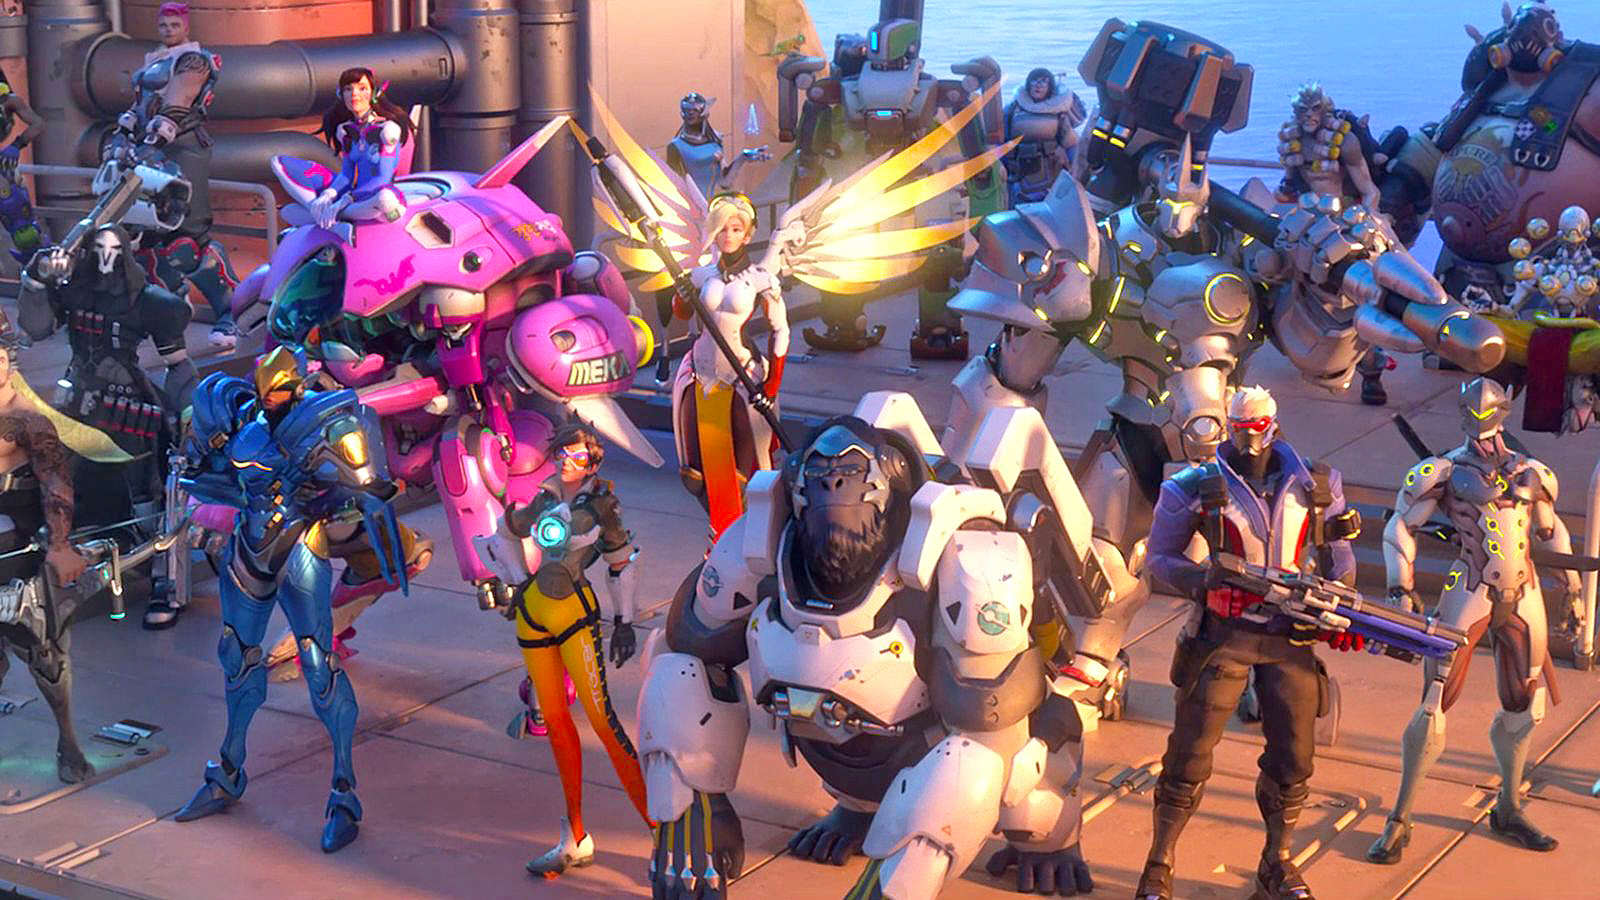 overwatch ed Overwatch Pays Touching Tribute To Fan Who Died Before Launch